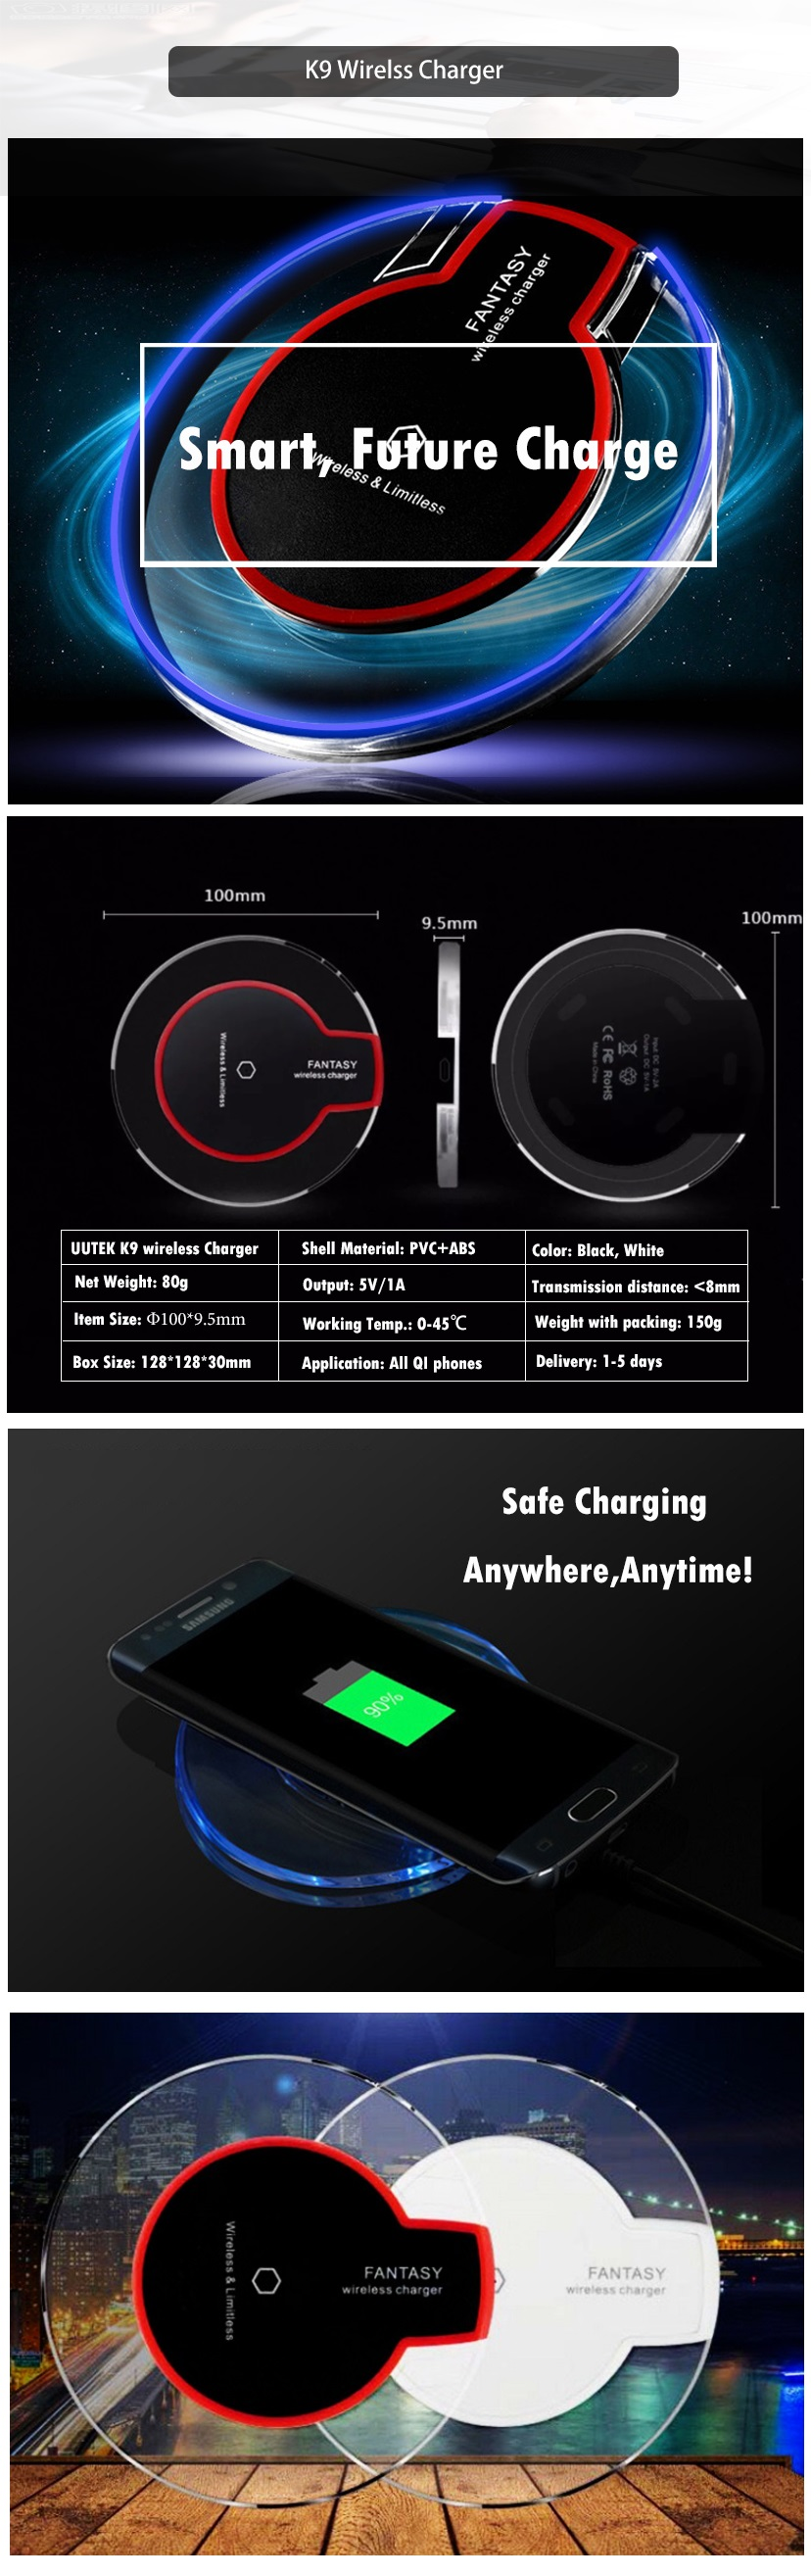 K9 Universal Crystal Qi Wireless Charger With LED Light  Mobile Phone Wireless Charging UUTEK